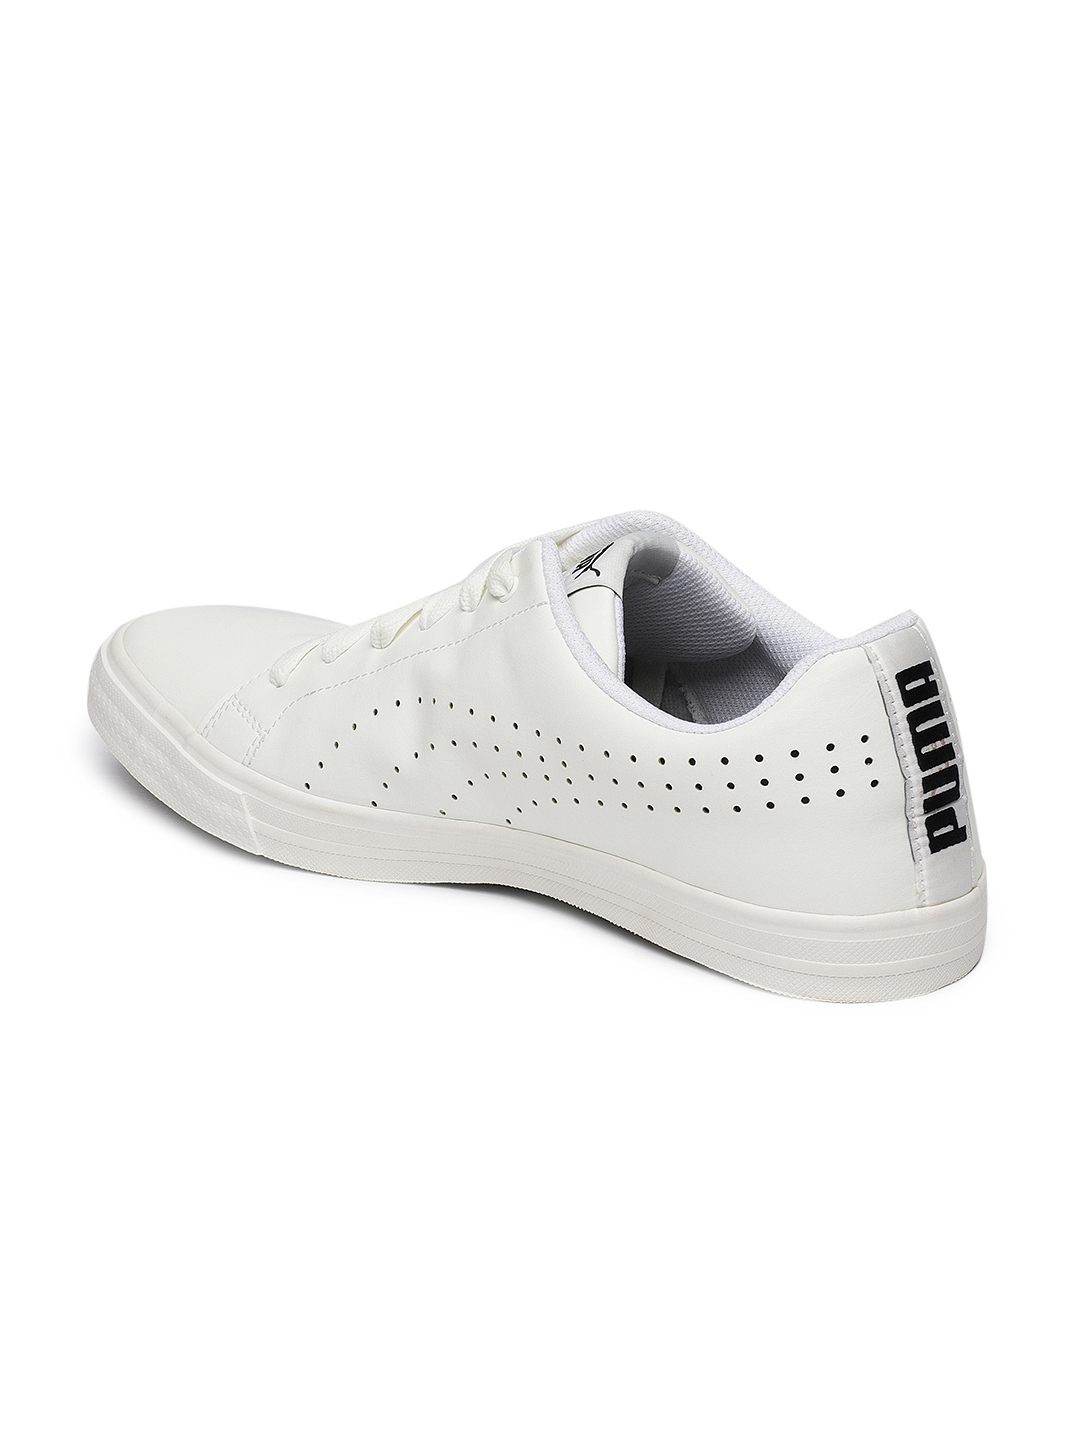 74334703b09 Buy Puma Men White Poise Perf IDP Sneakers - Casual Shoes for Men ...